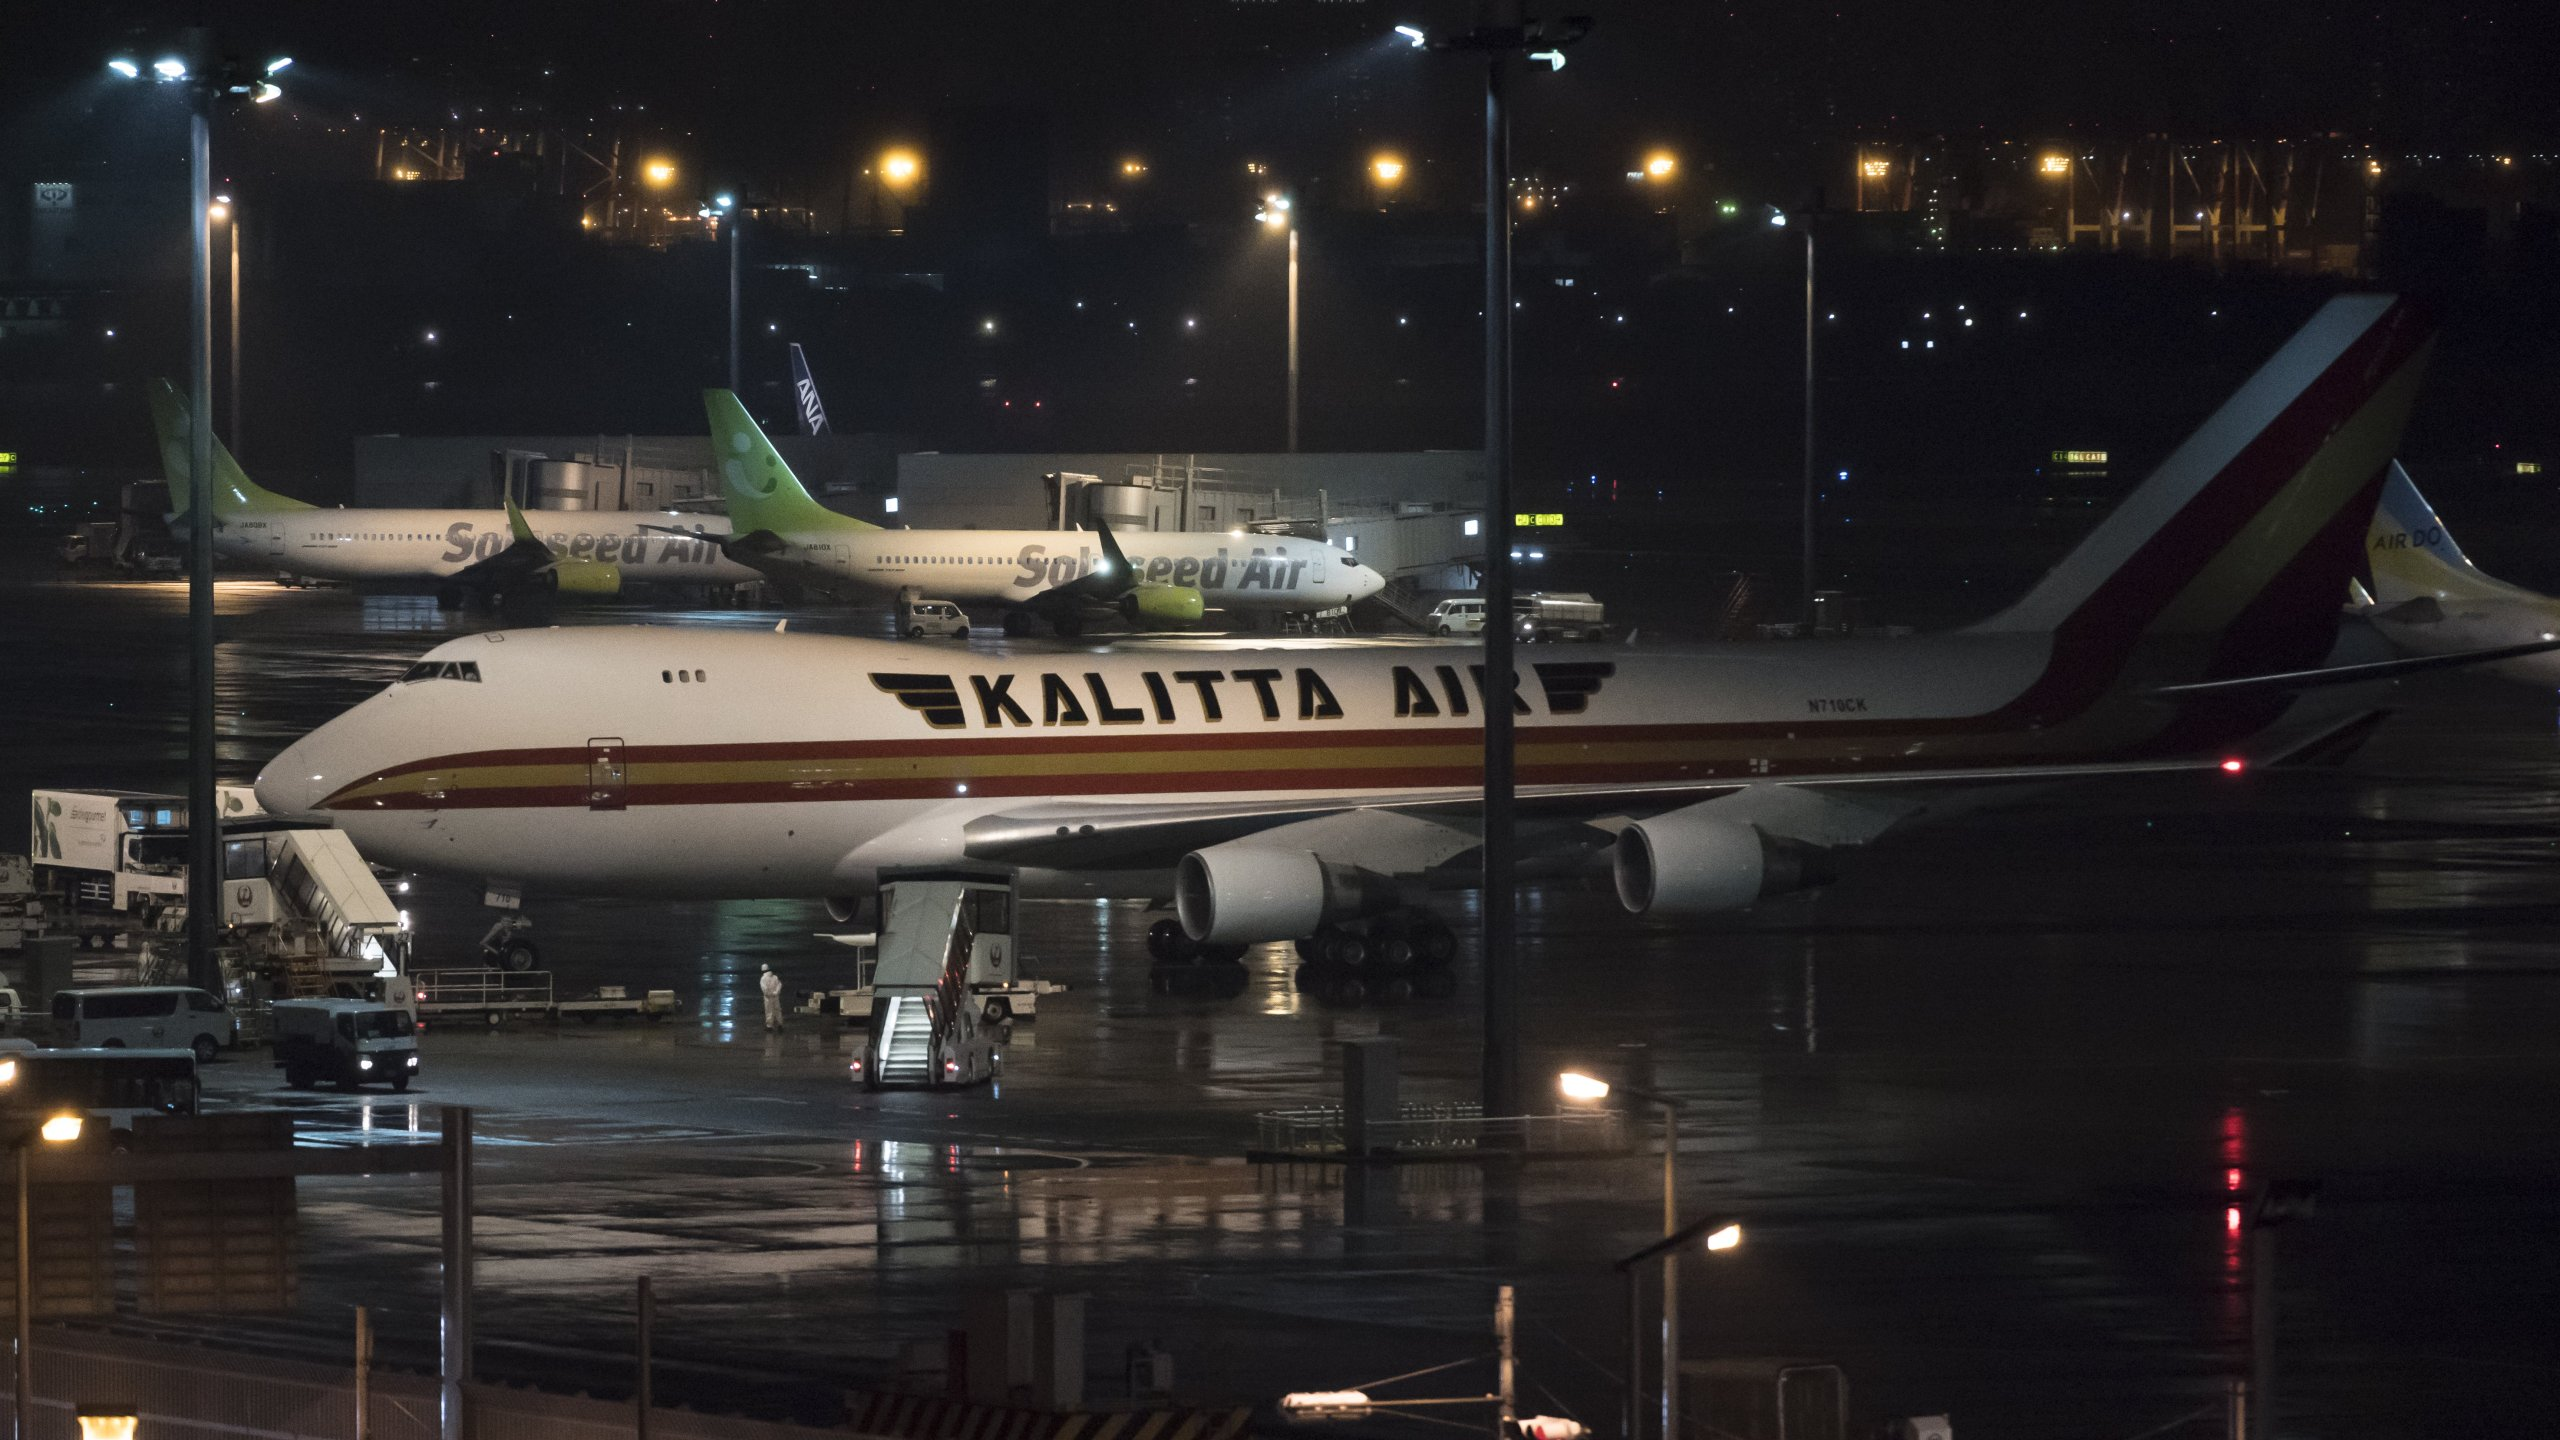 A Kalitta Air passenger aircraft, chartered by the U.S. government, arrives at Haneda airport on Feb. 16, 2020 in Tokyo, Japan. The U.S. has become the first country to offer to repatriate citizens on the Diamond Princess cruise ship while it remains quarantined in Yokohama Port due to the coronavirus outbreak. (Credit: Photo by Tomohiro Ohsumi/Getty Images)